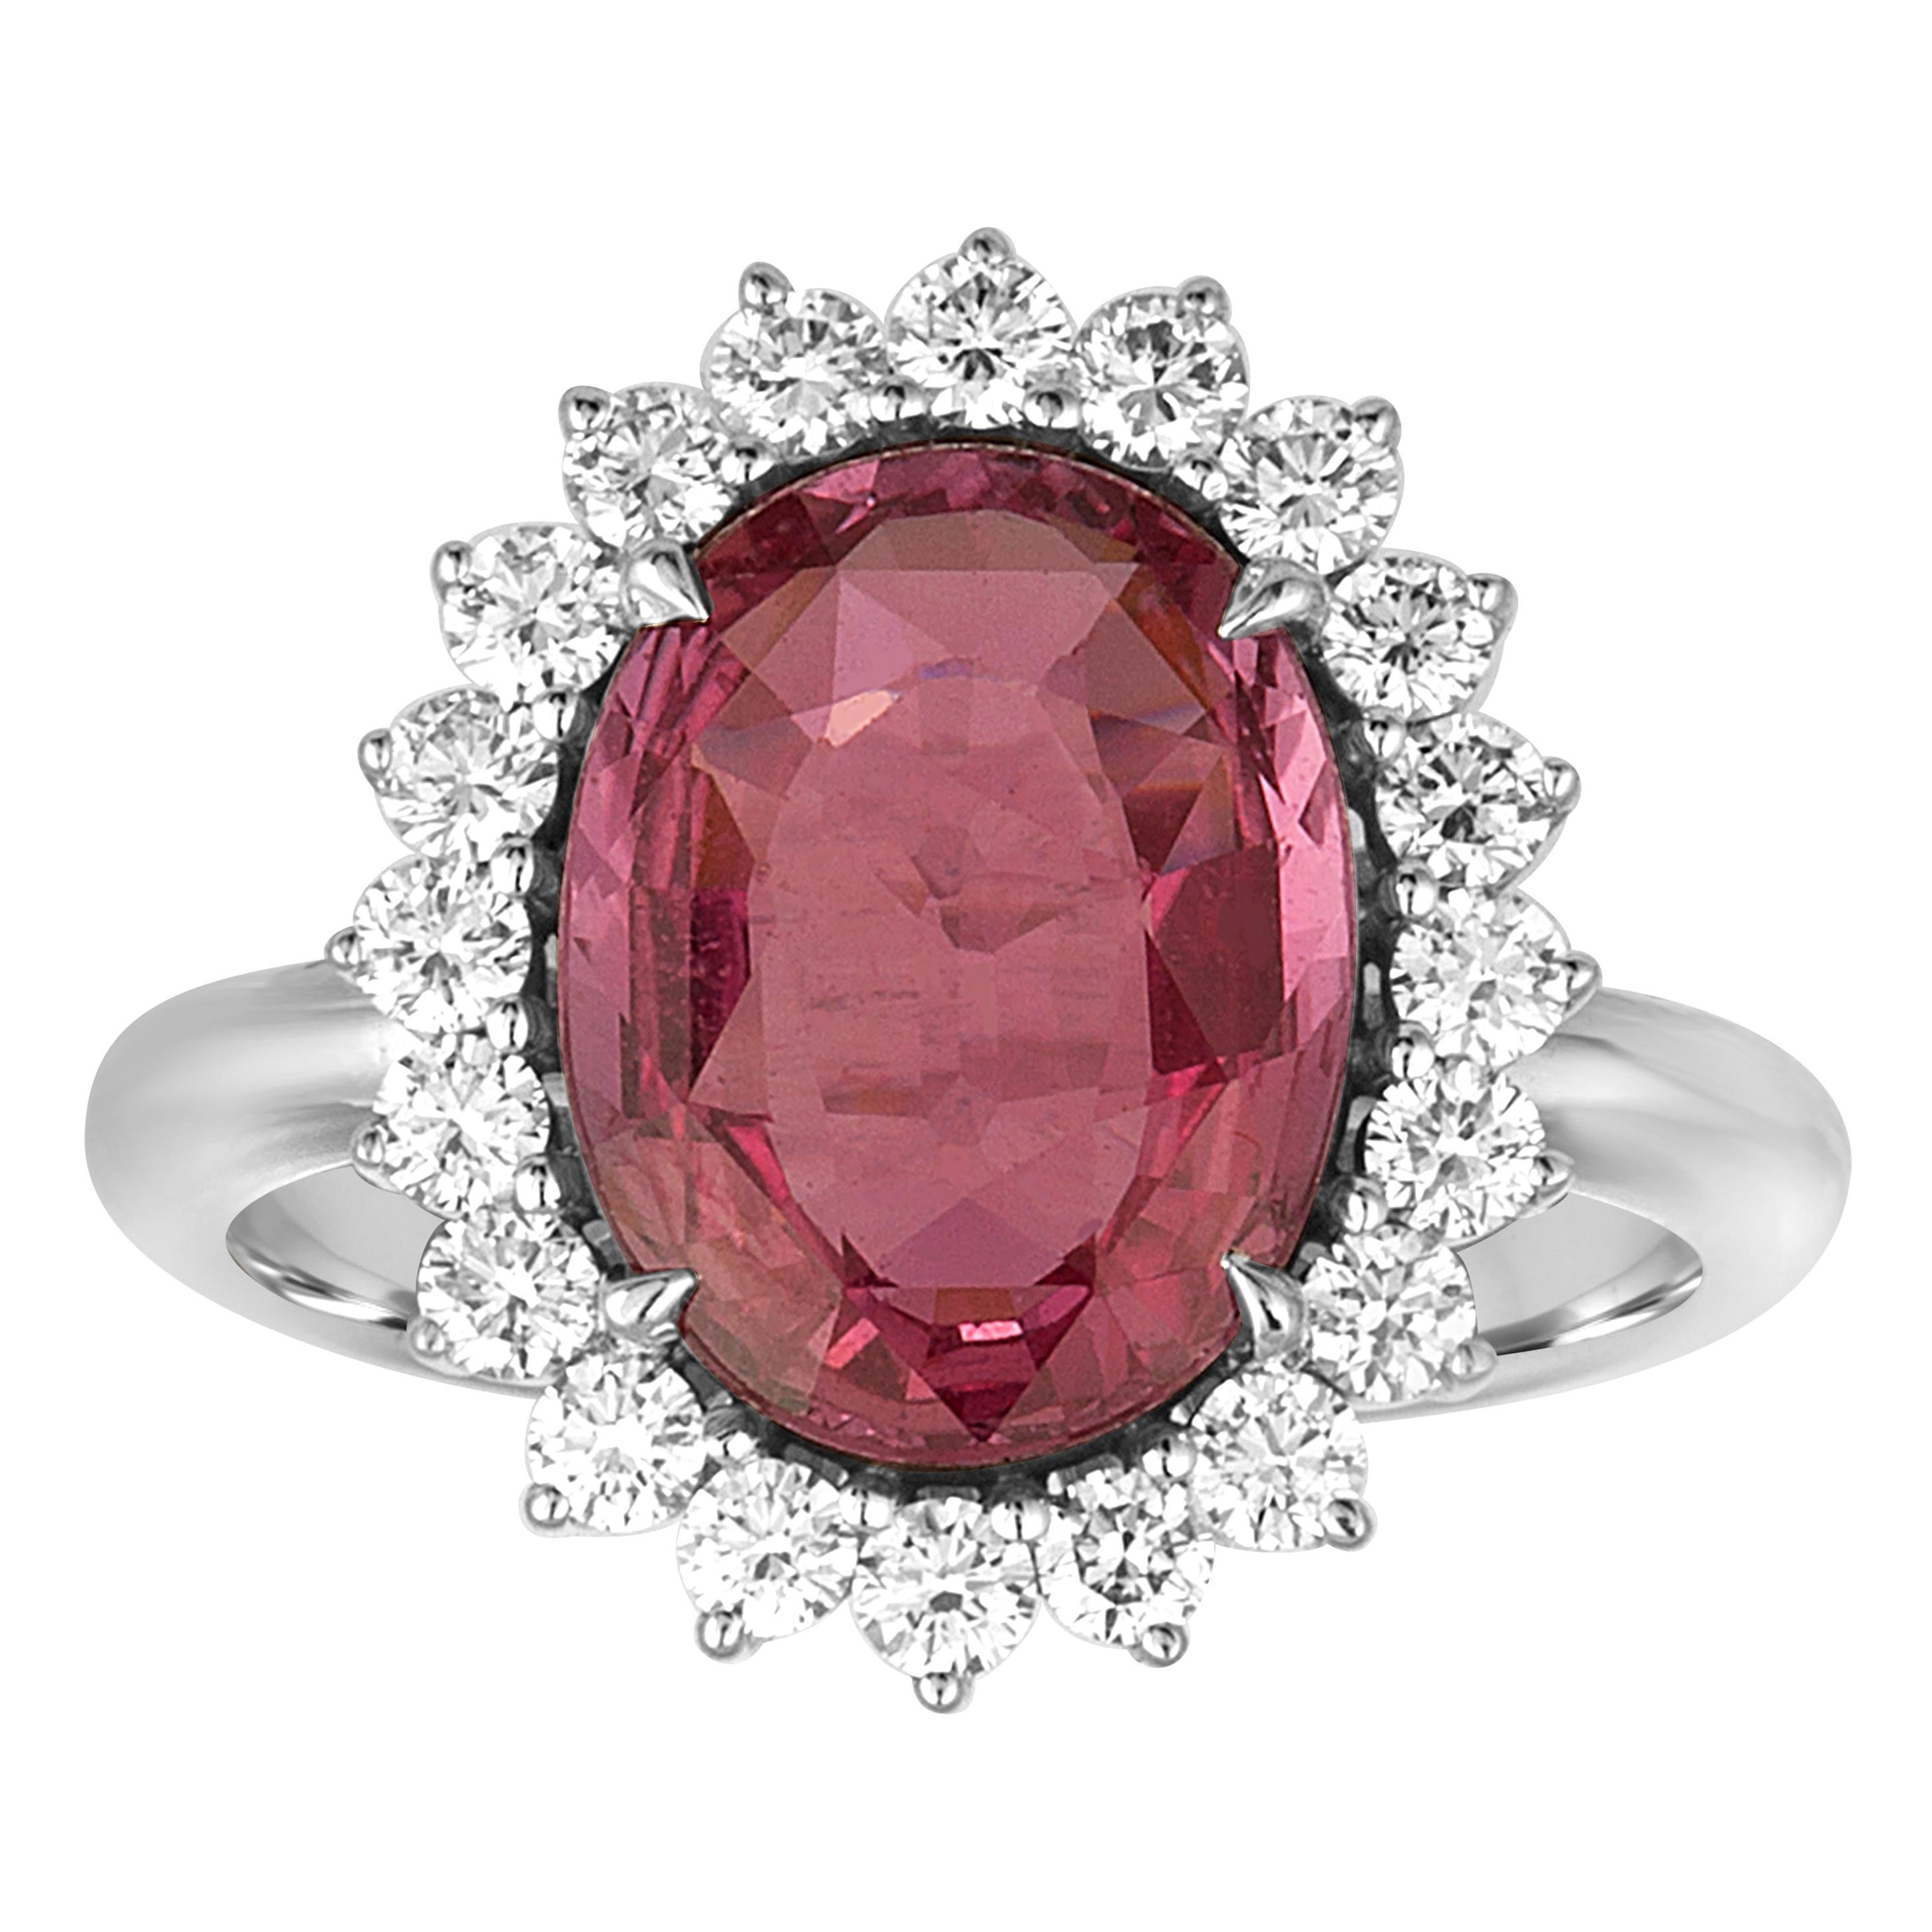 AGL Certified 4.06 Carat Oval Pink Sapphire Diamond Gold Ring